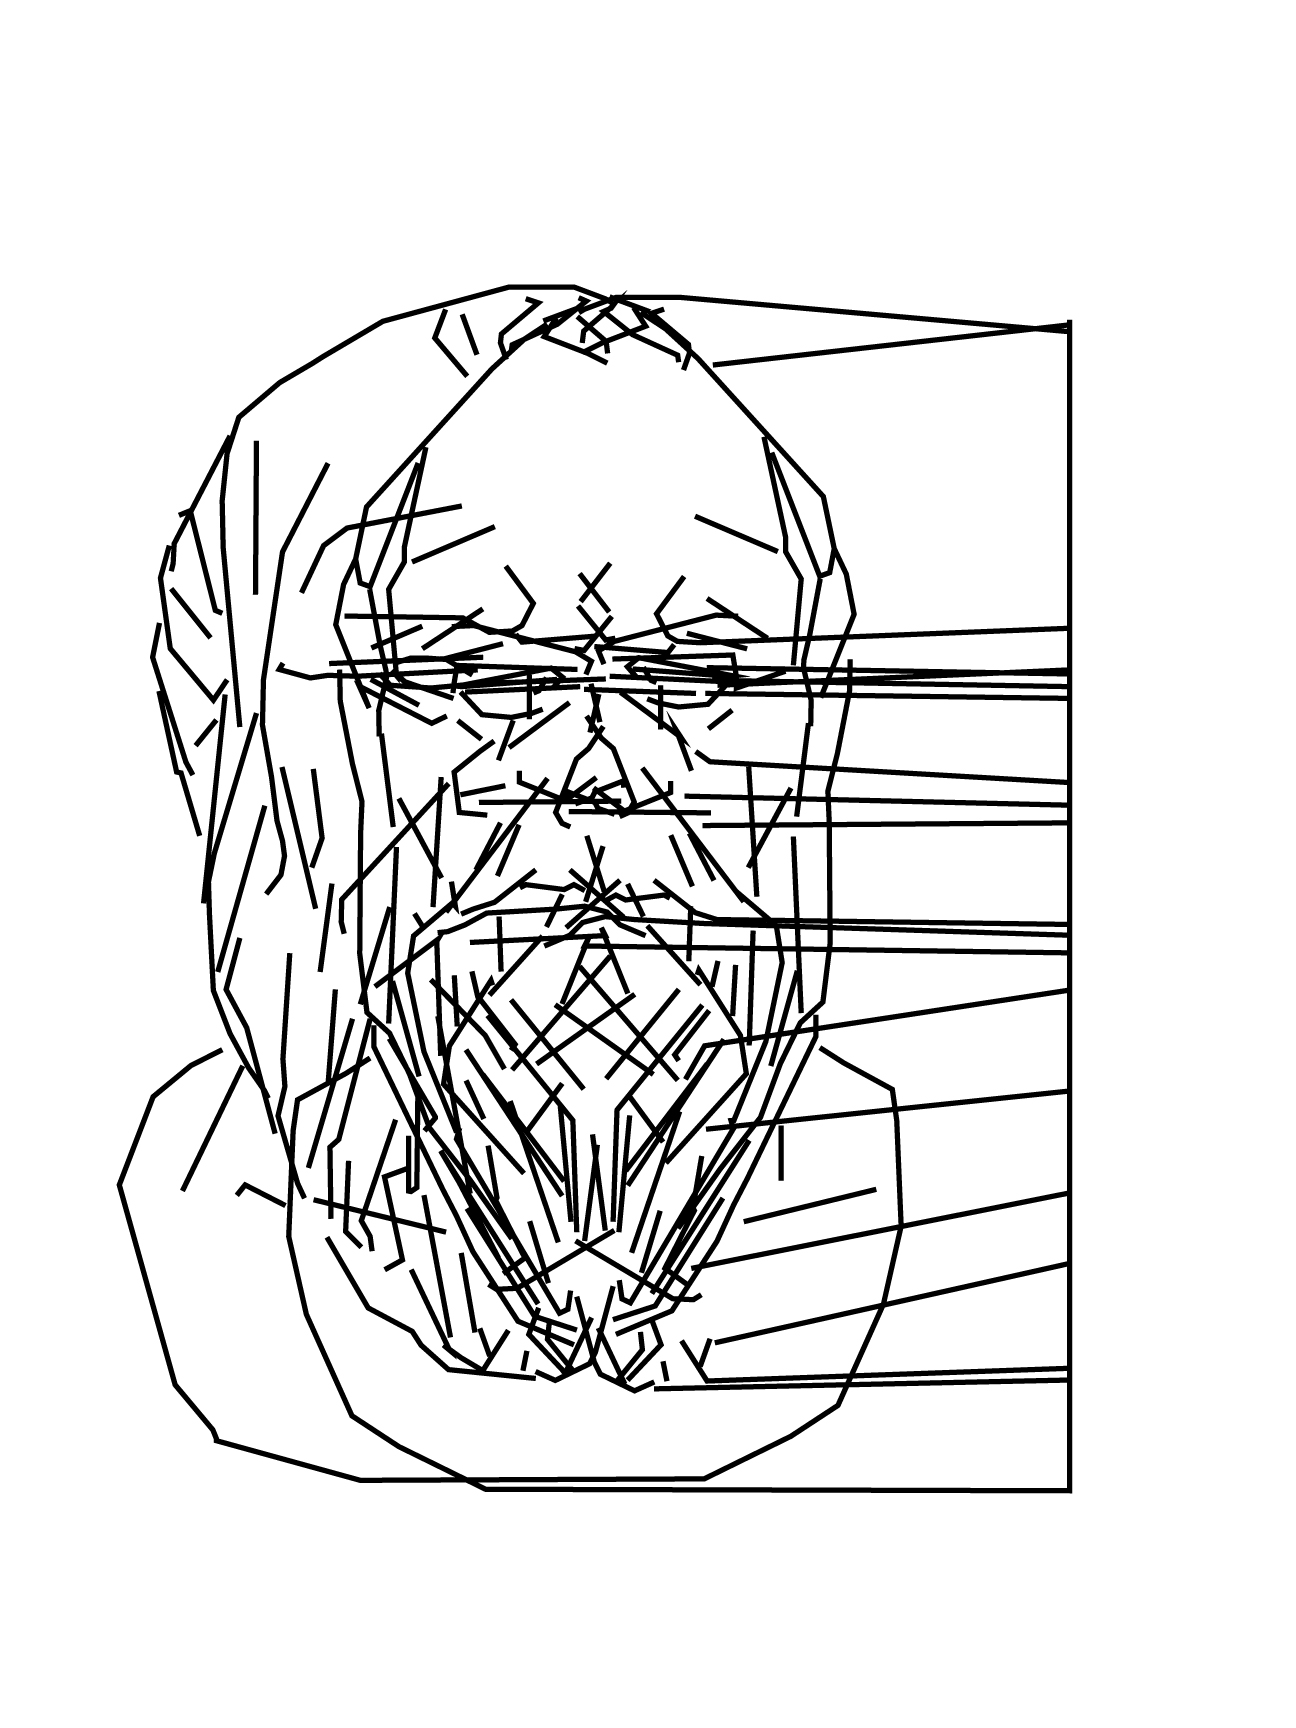 konstantin Last 28 seconds of the life of Socrates vinyl cut on paper